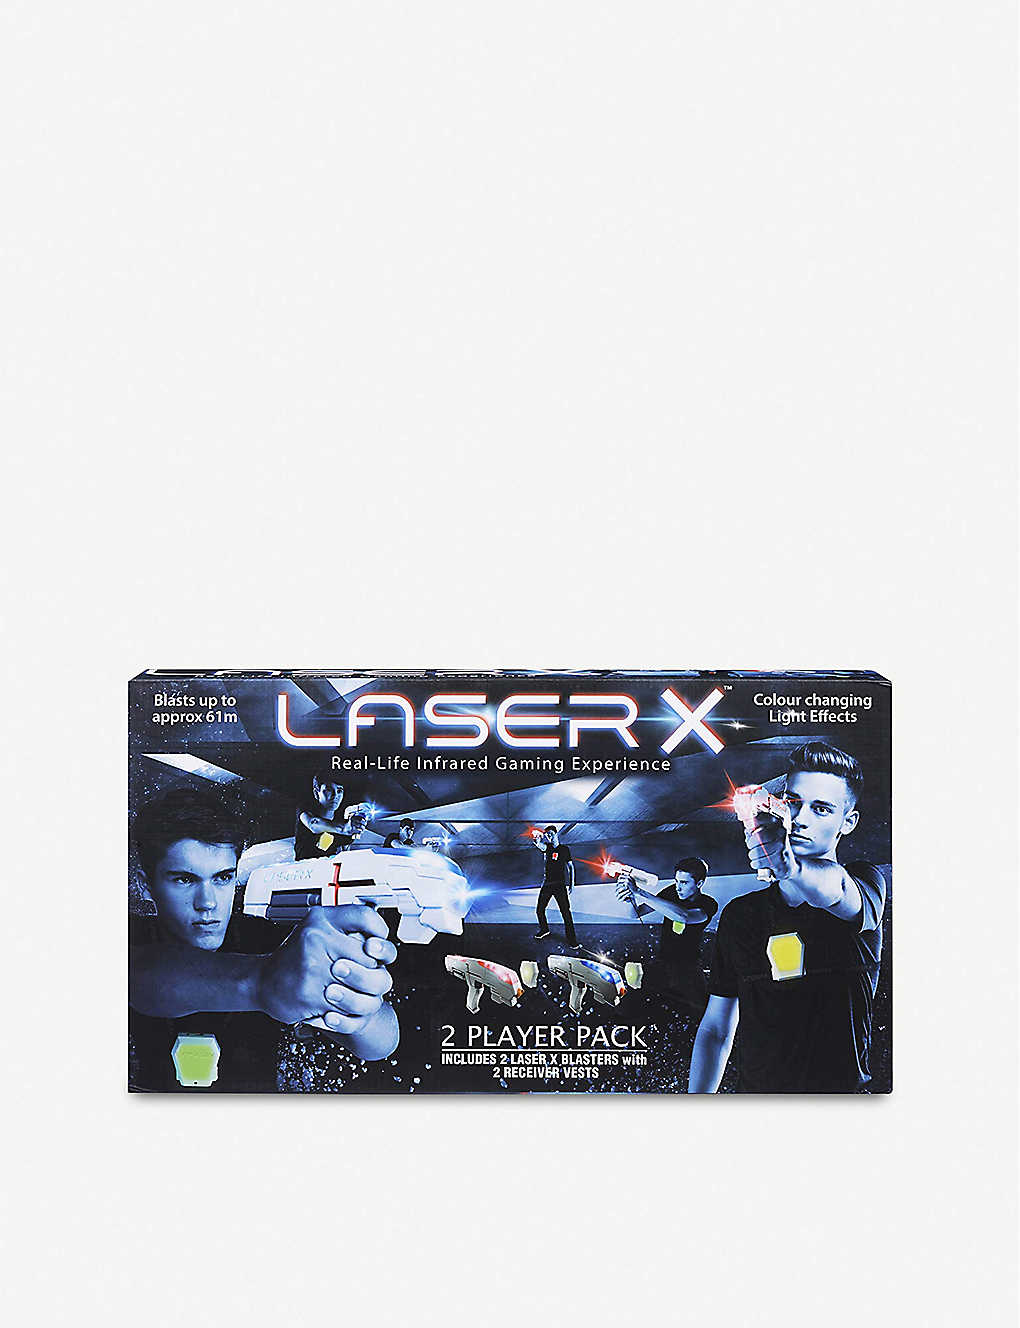 BOARD GAMES: Laser X two player pack